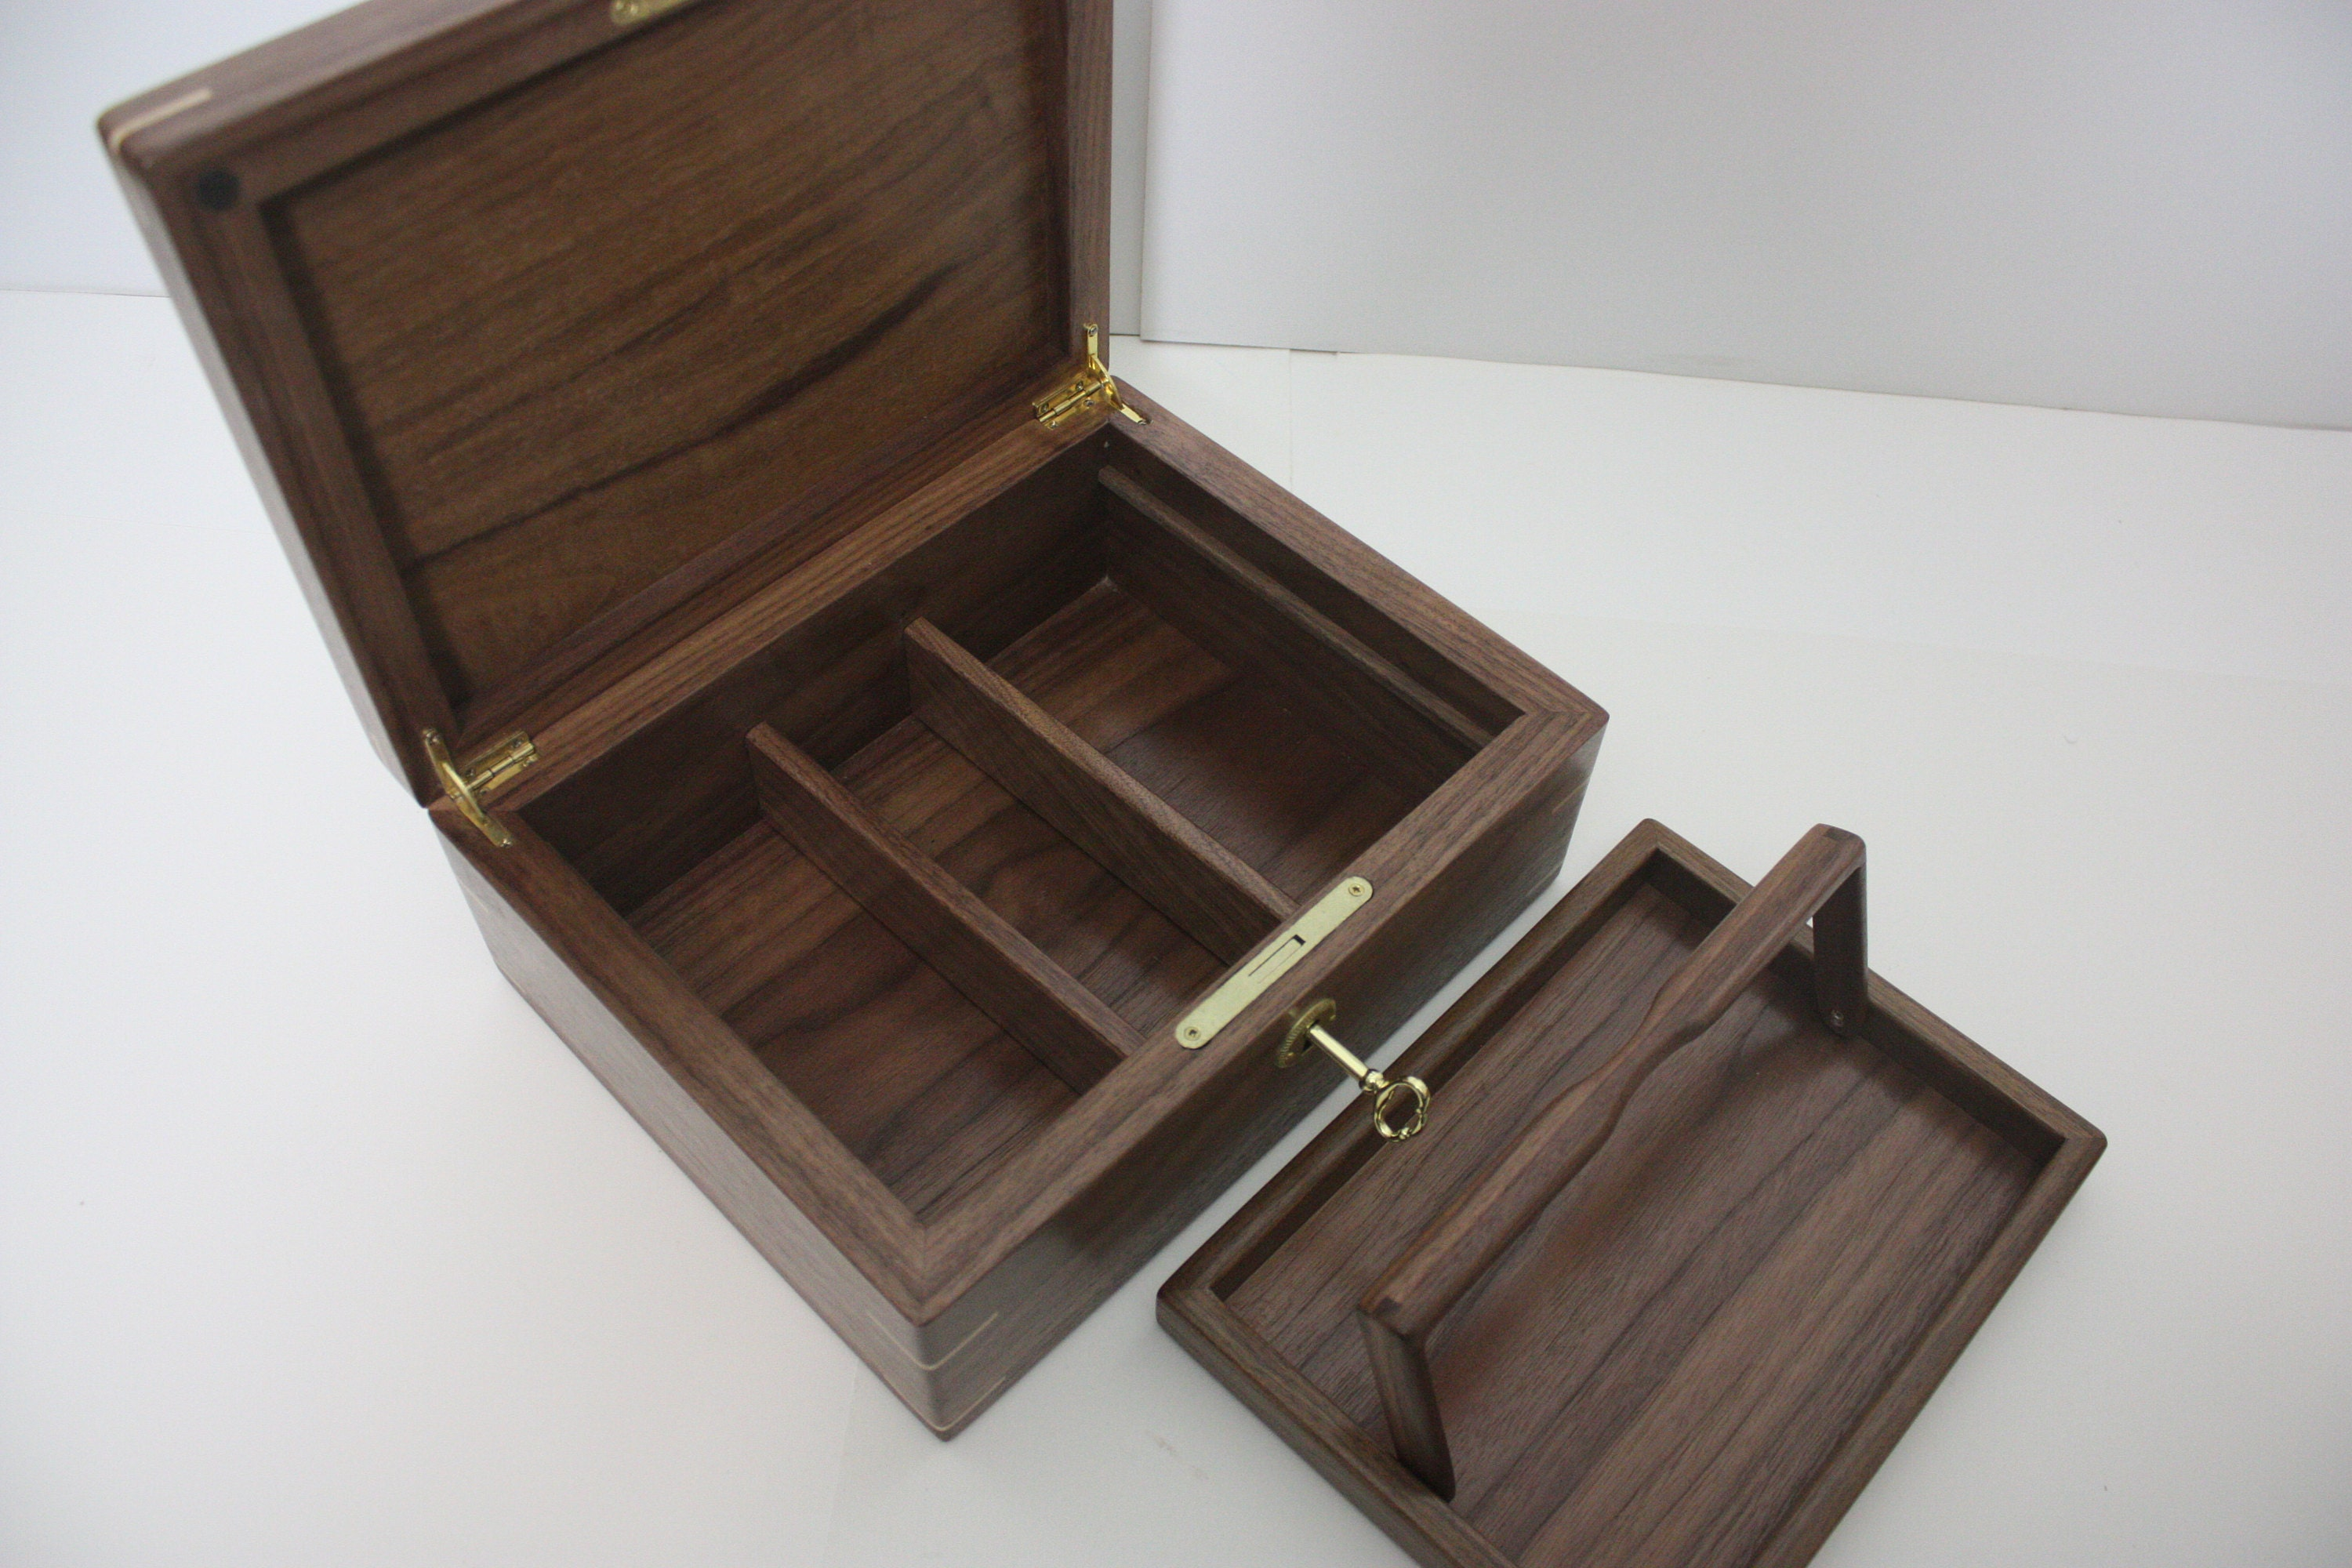 Wood Box with Tray and Dividers